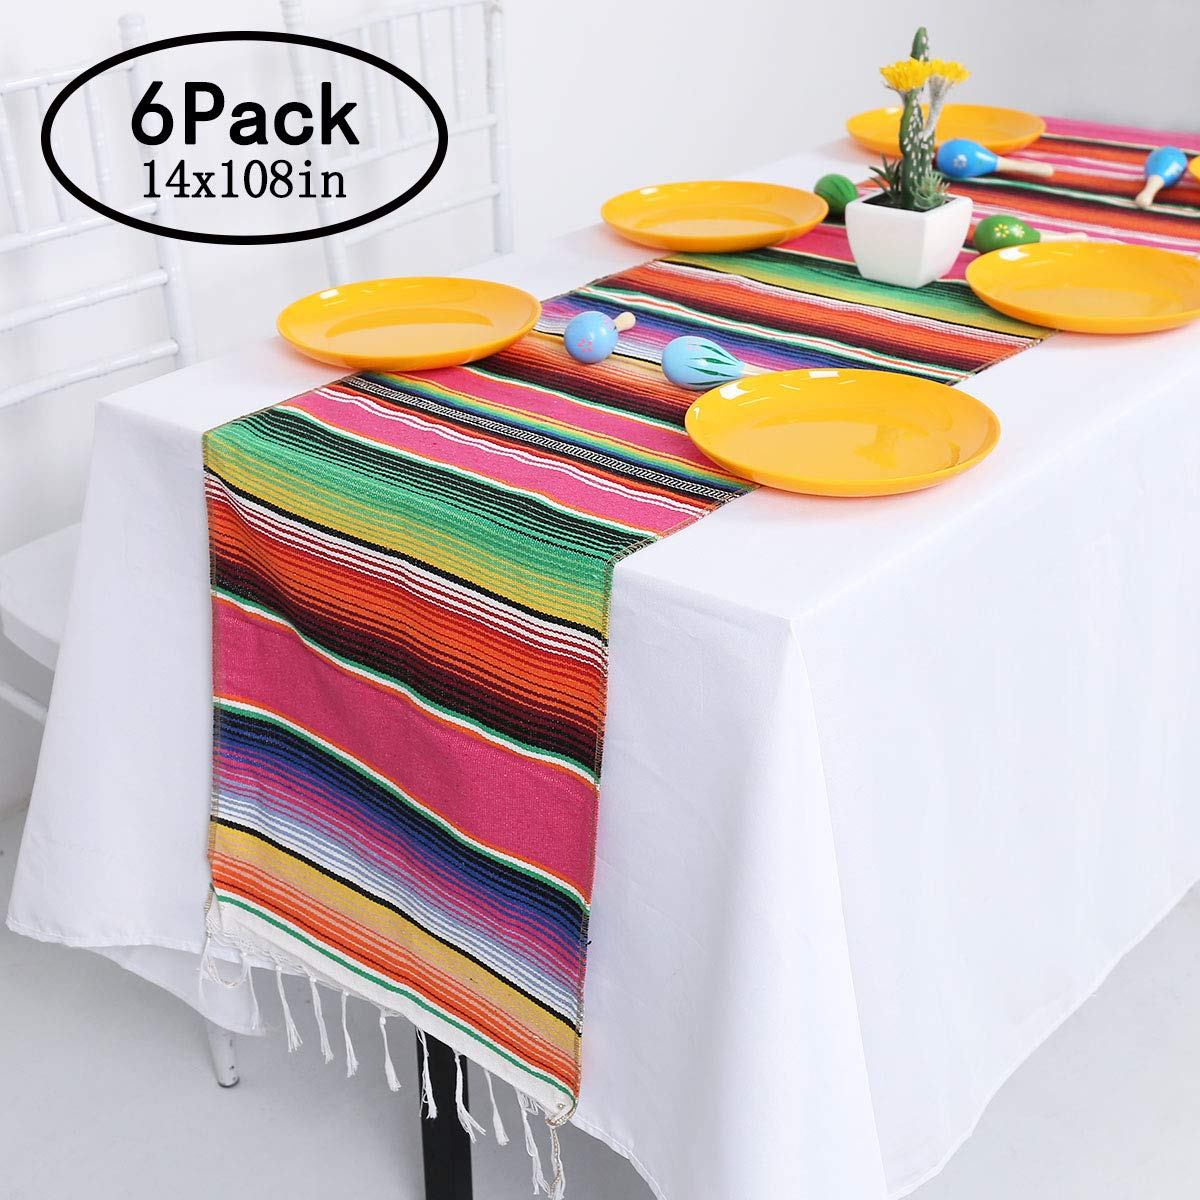 Helaku Mexican Table Runner Mexican Serape Table Runner with Tassels Mexican Table Runner 6 Pack, 14x108